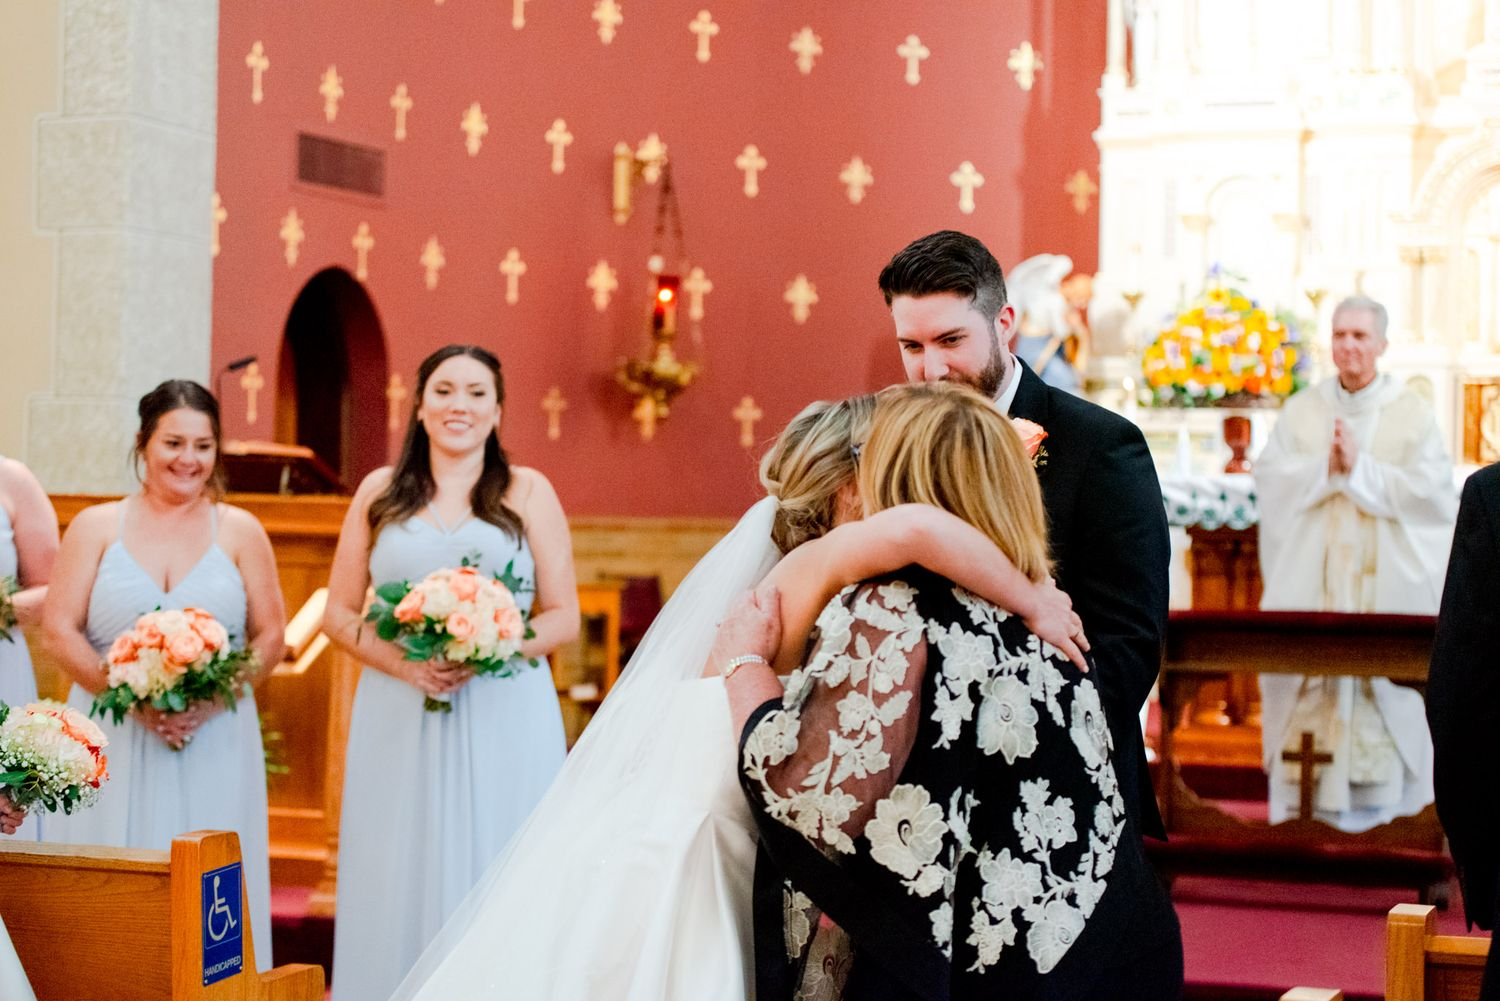 mother and bride hugging before handing bride off to groom